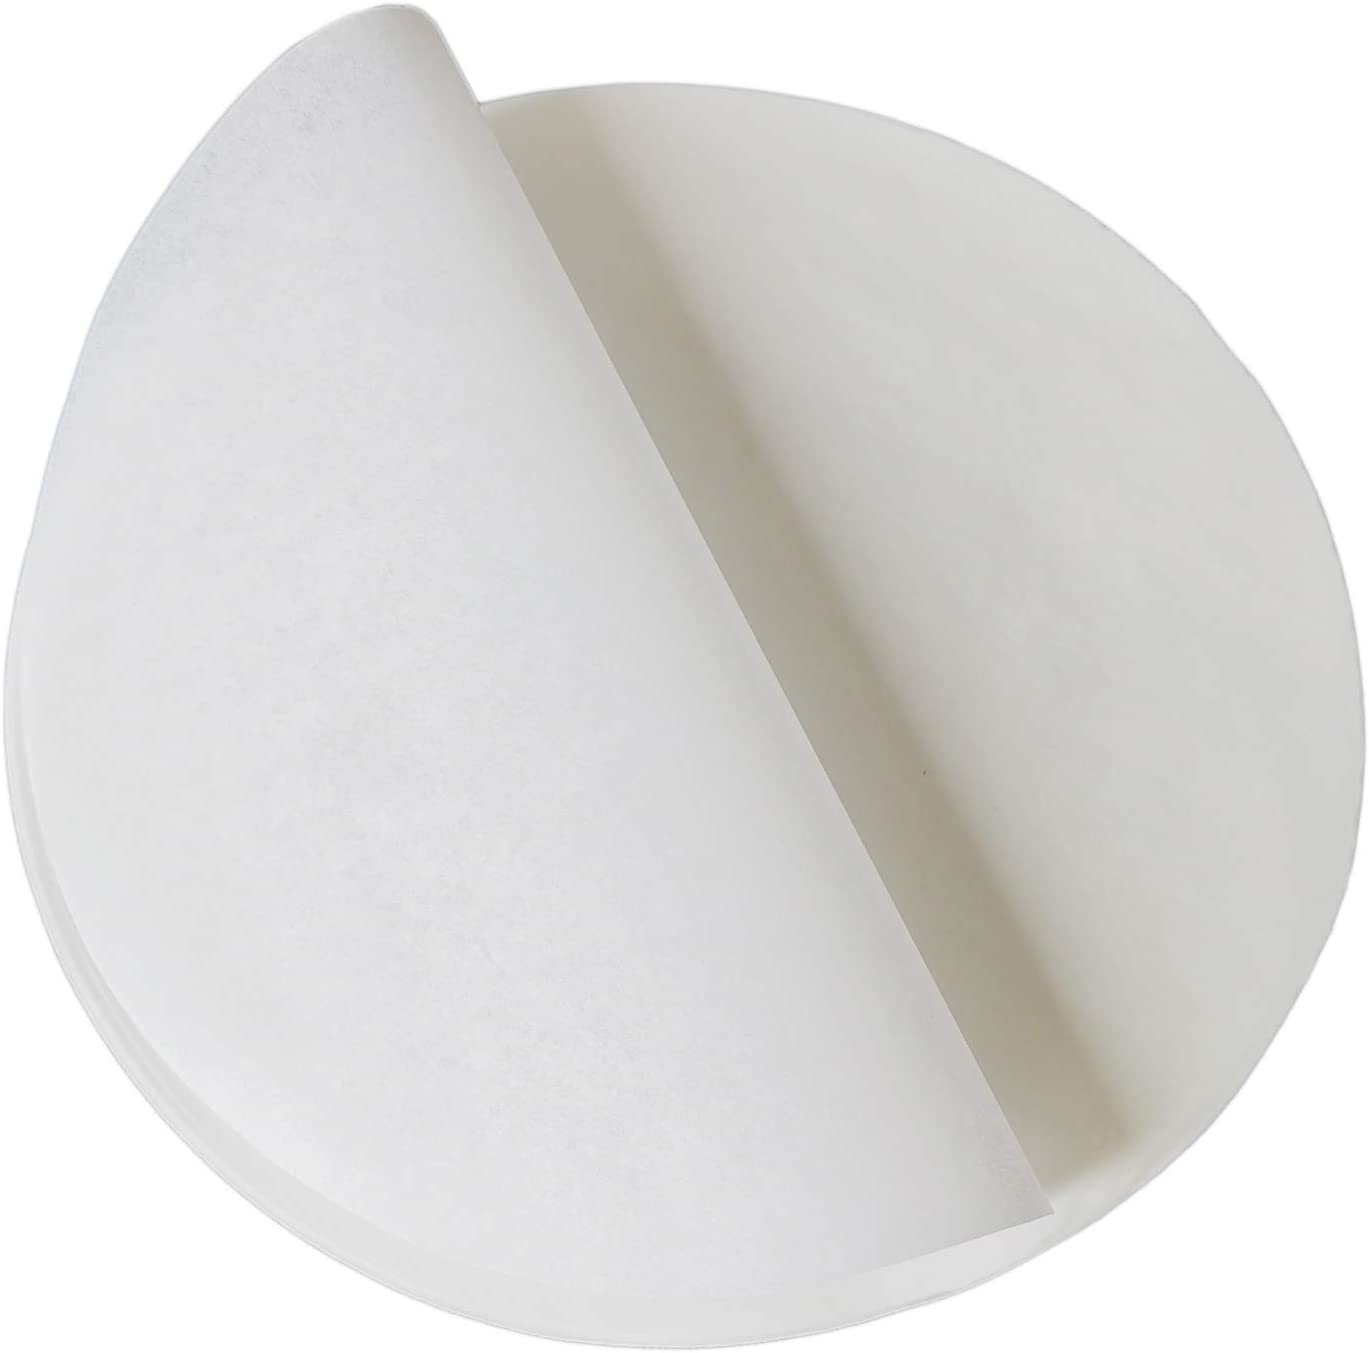 8 Inch Parchment Paper Rounds 200 Sheet for Baking, Heavy Duty Air Fryer Liners Nonstick, Uses for Baking Cookies, Bread, Meat, Pizza, Toaster Oven, Tortilla Press Paper